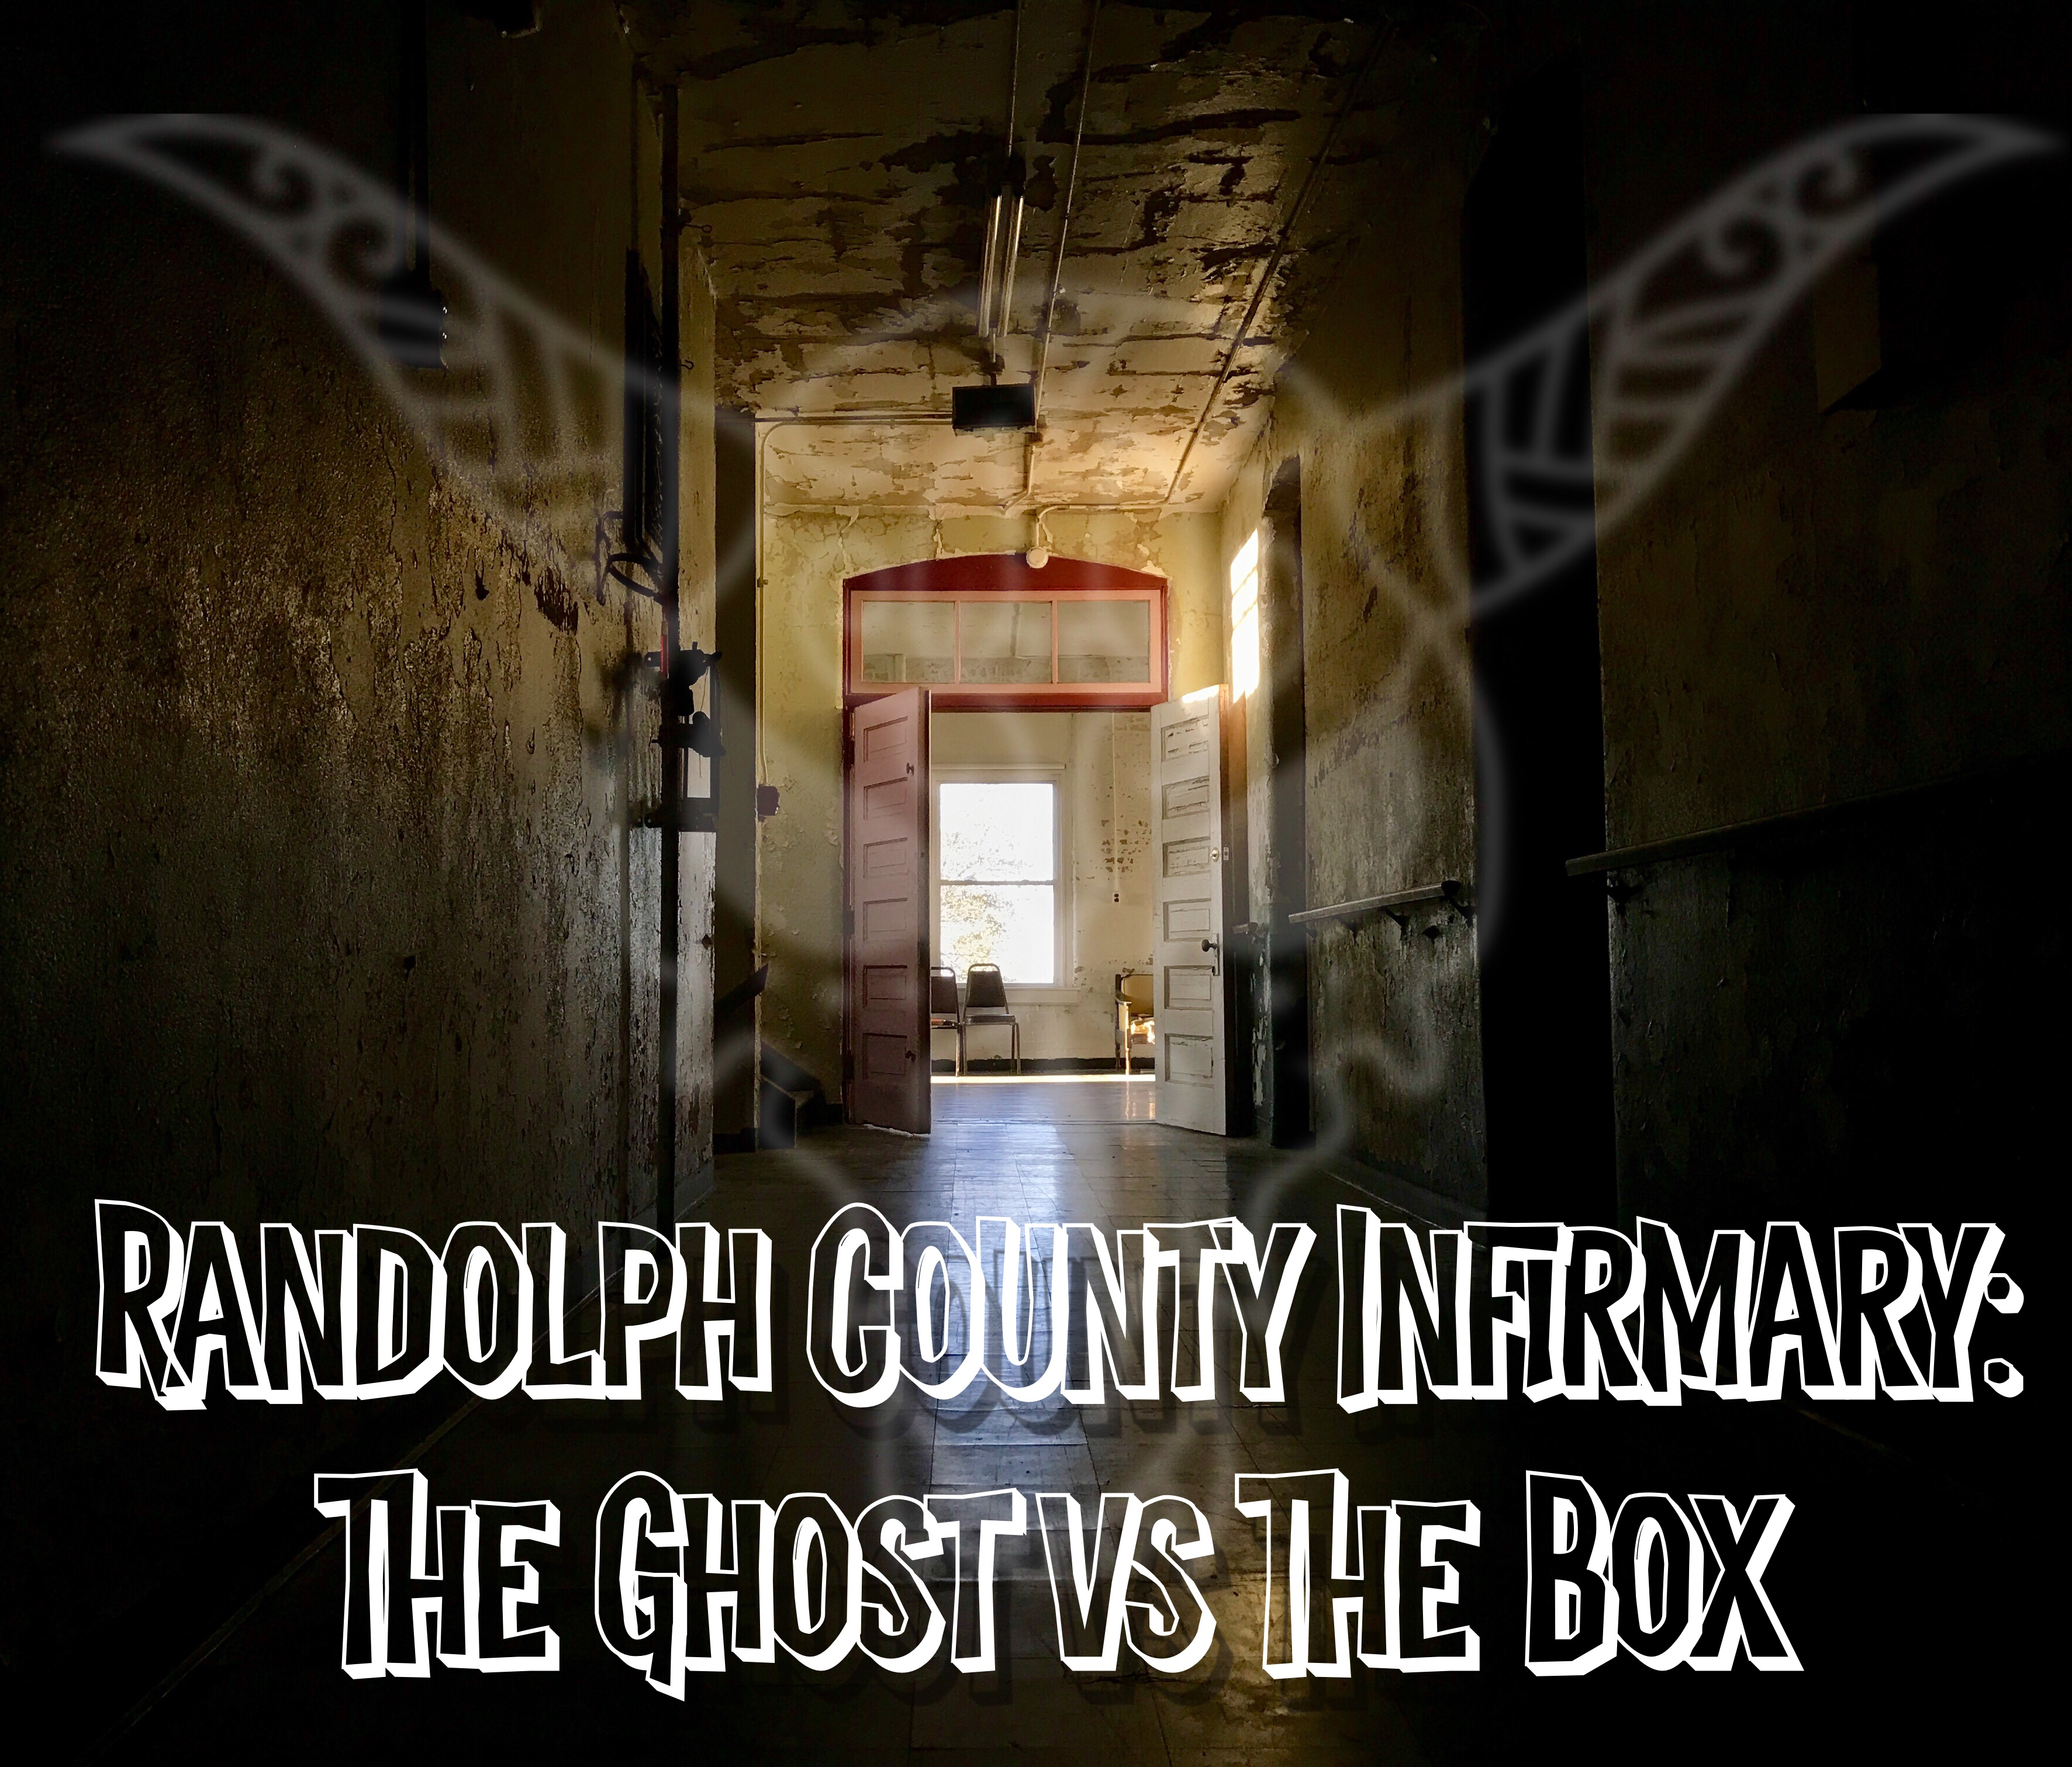 Randolph County Infirmary: The Ghost vs The Box – Winchester